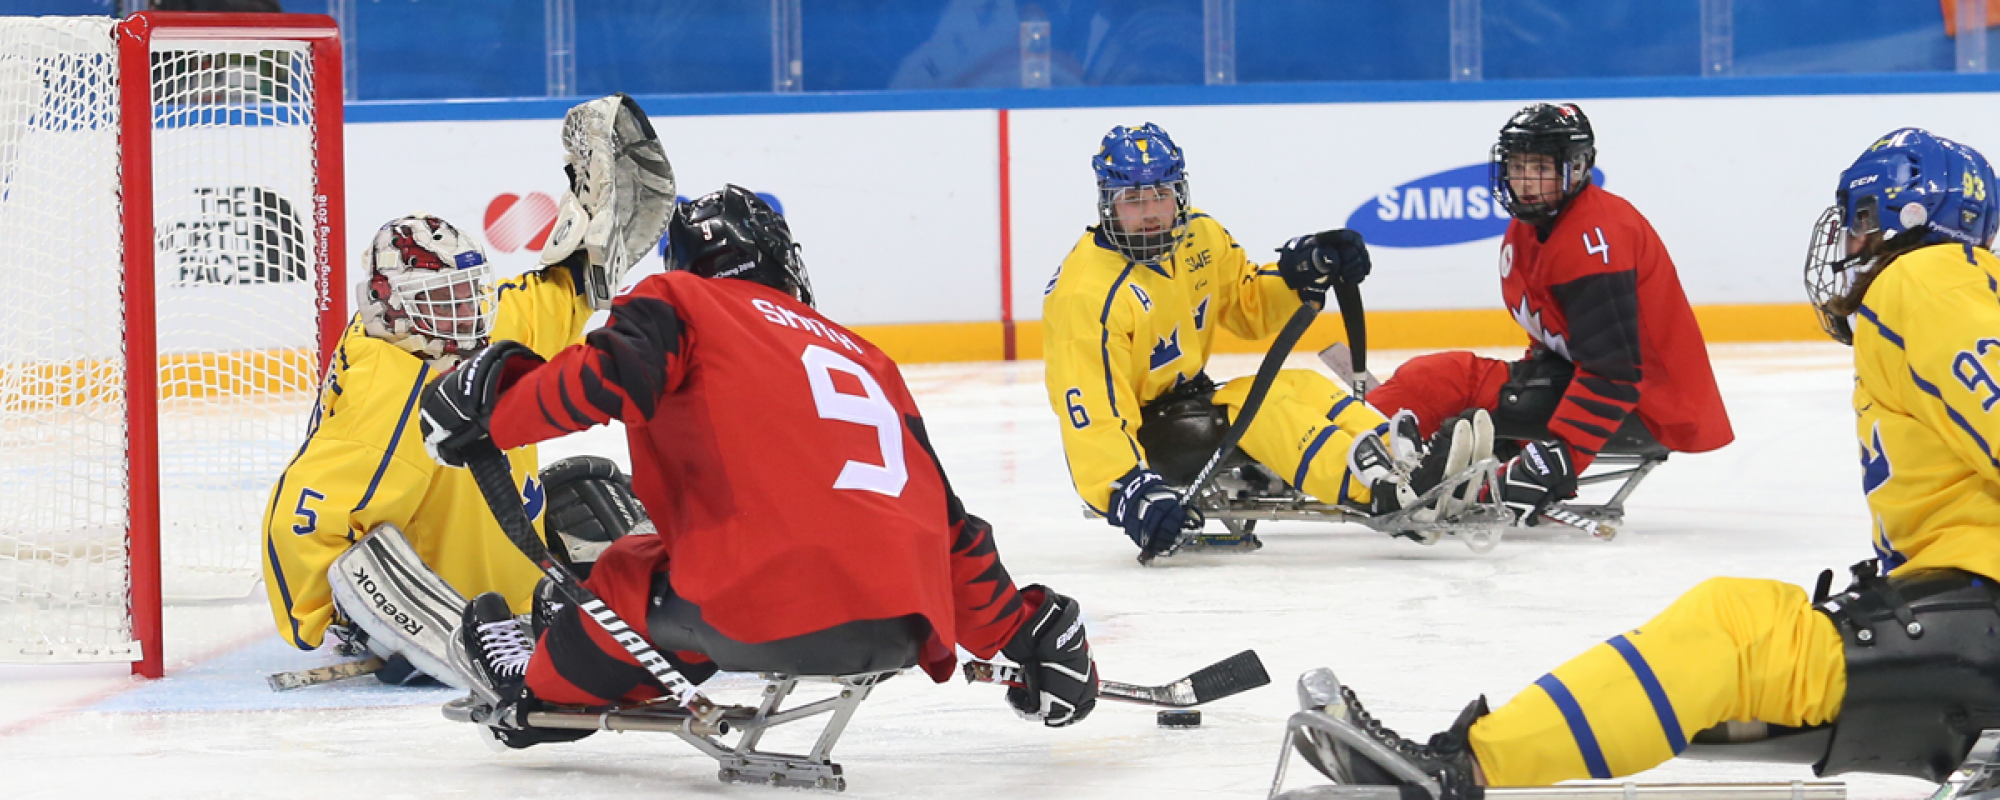 Corbyn Smith on team Canada playing offence against the Swiss